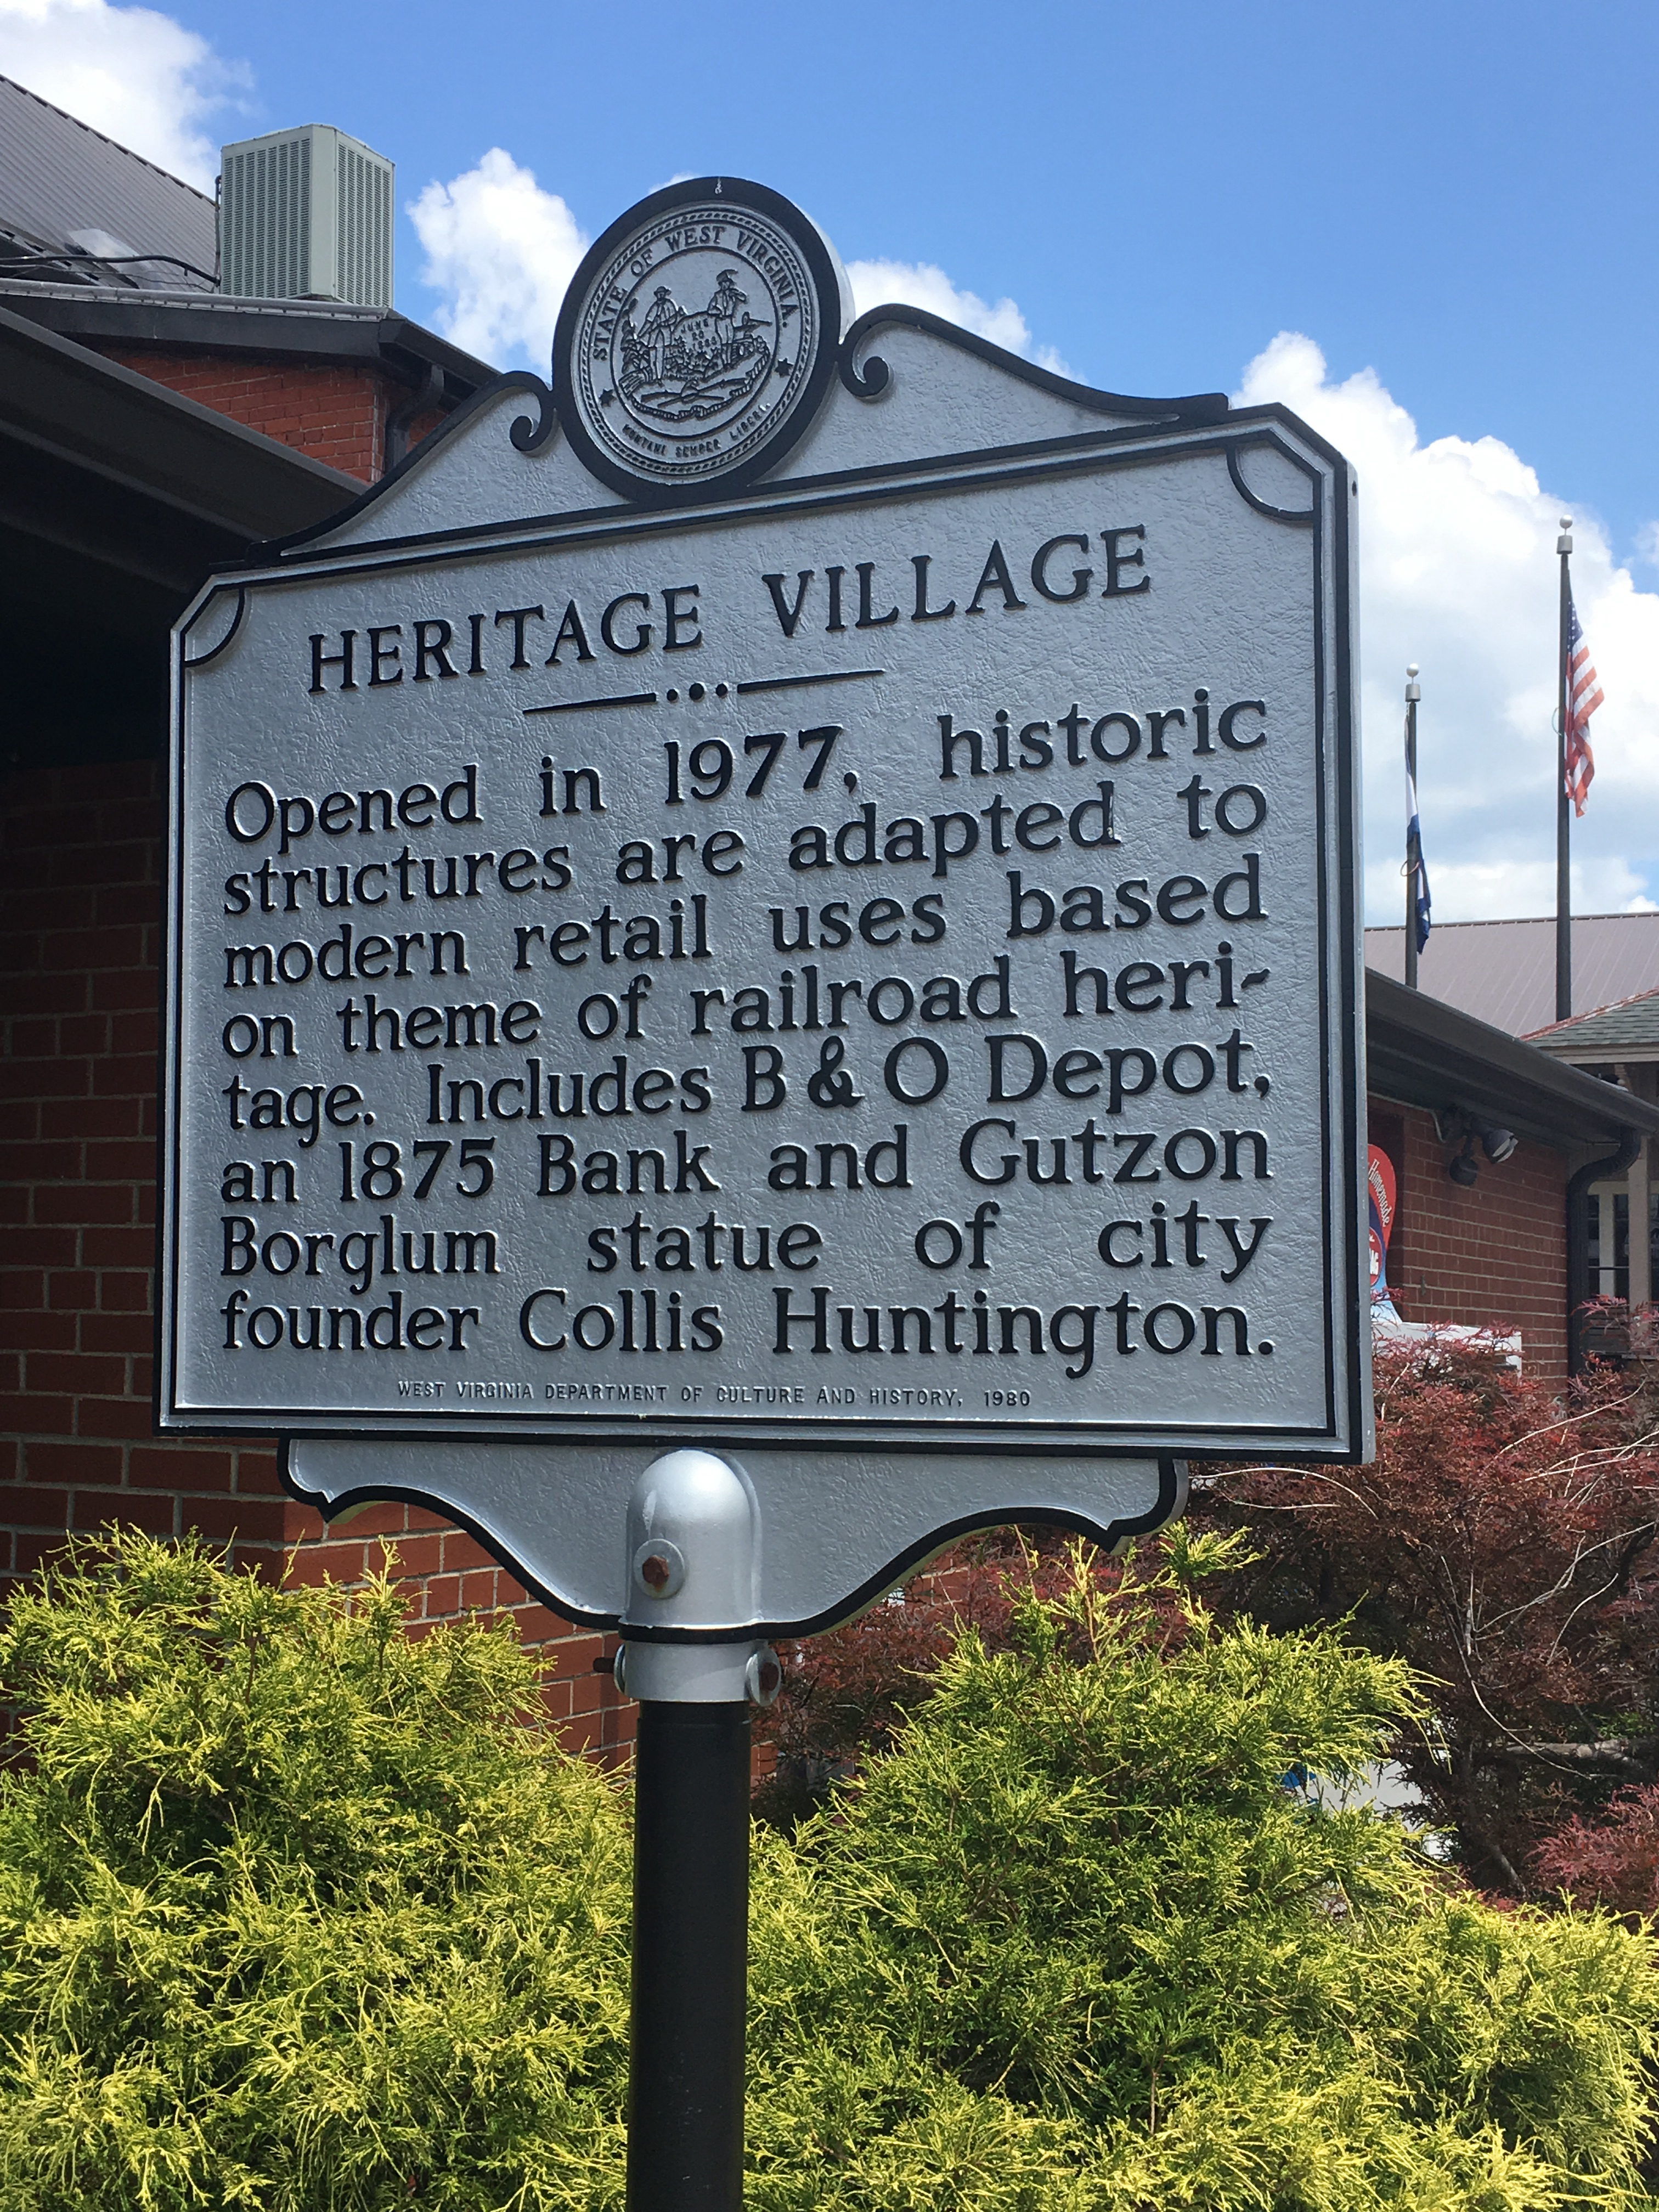 Historical Marker for Heritage Station; it was originally known as Heritage Village when it first opened.